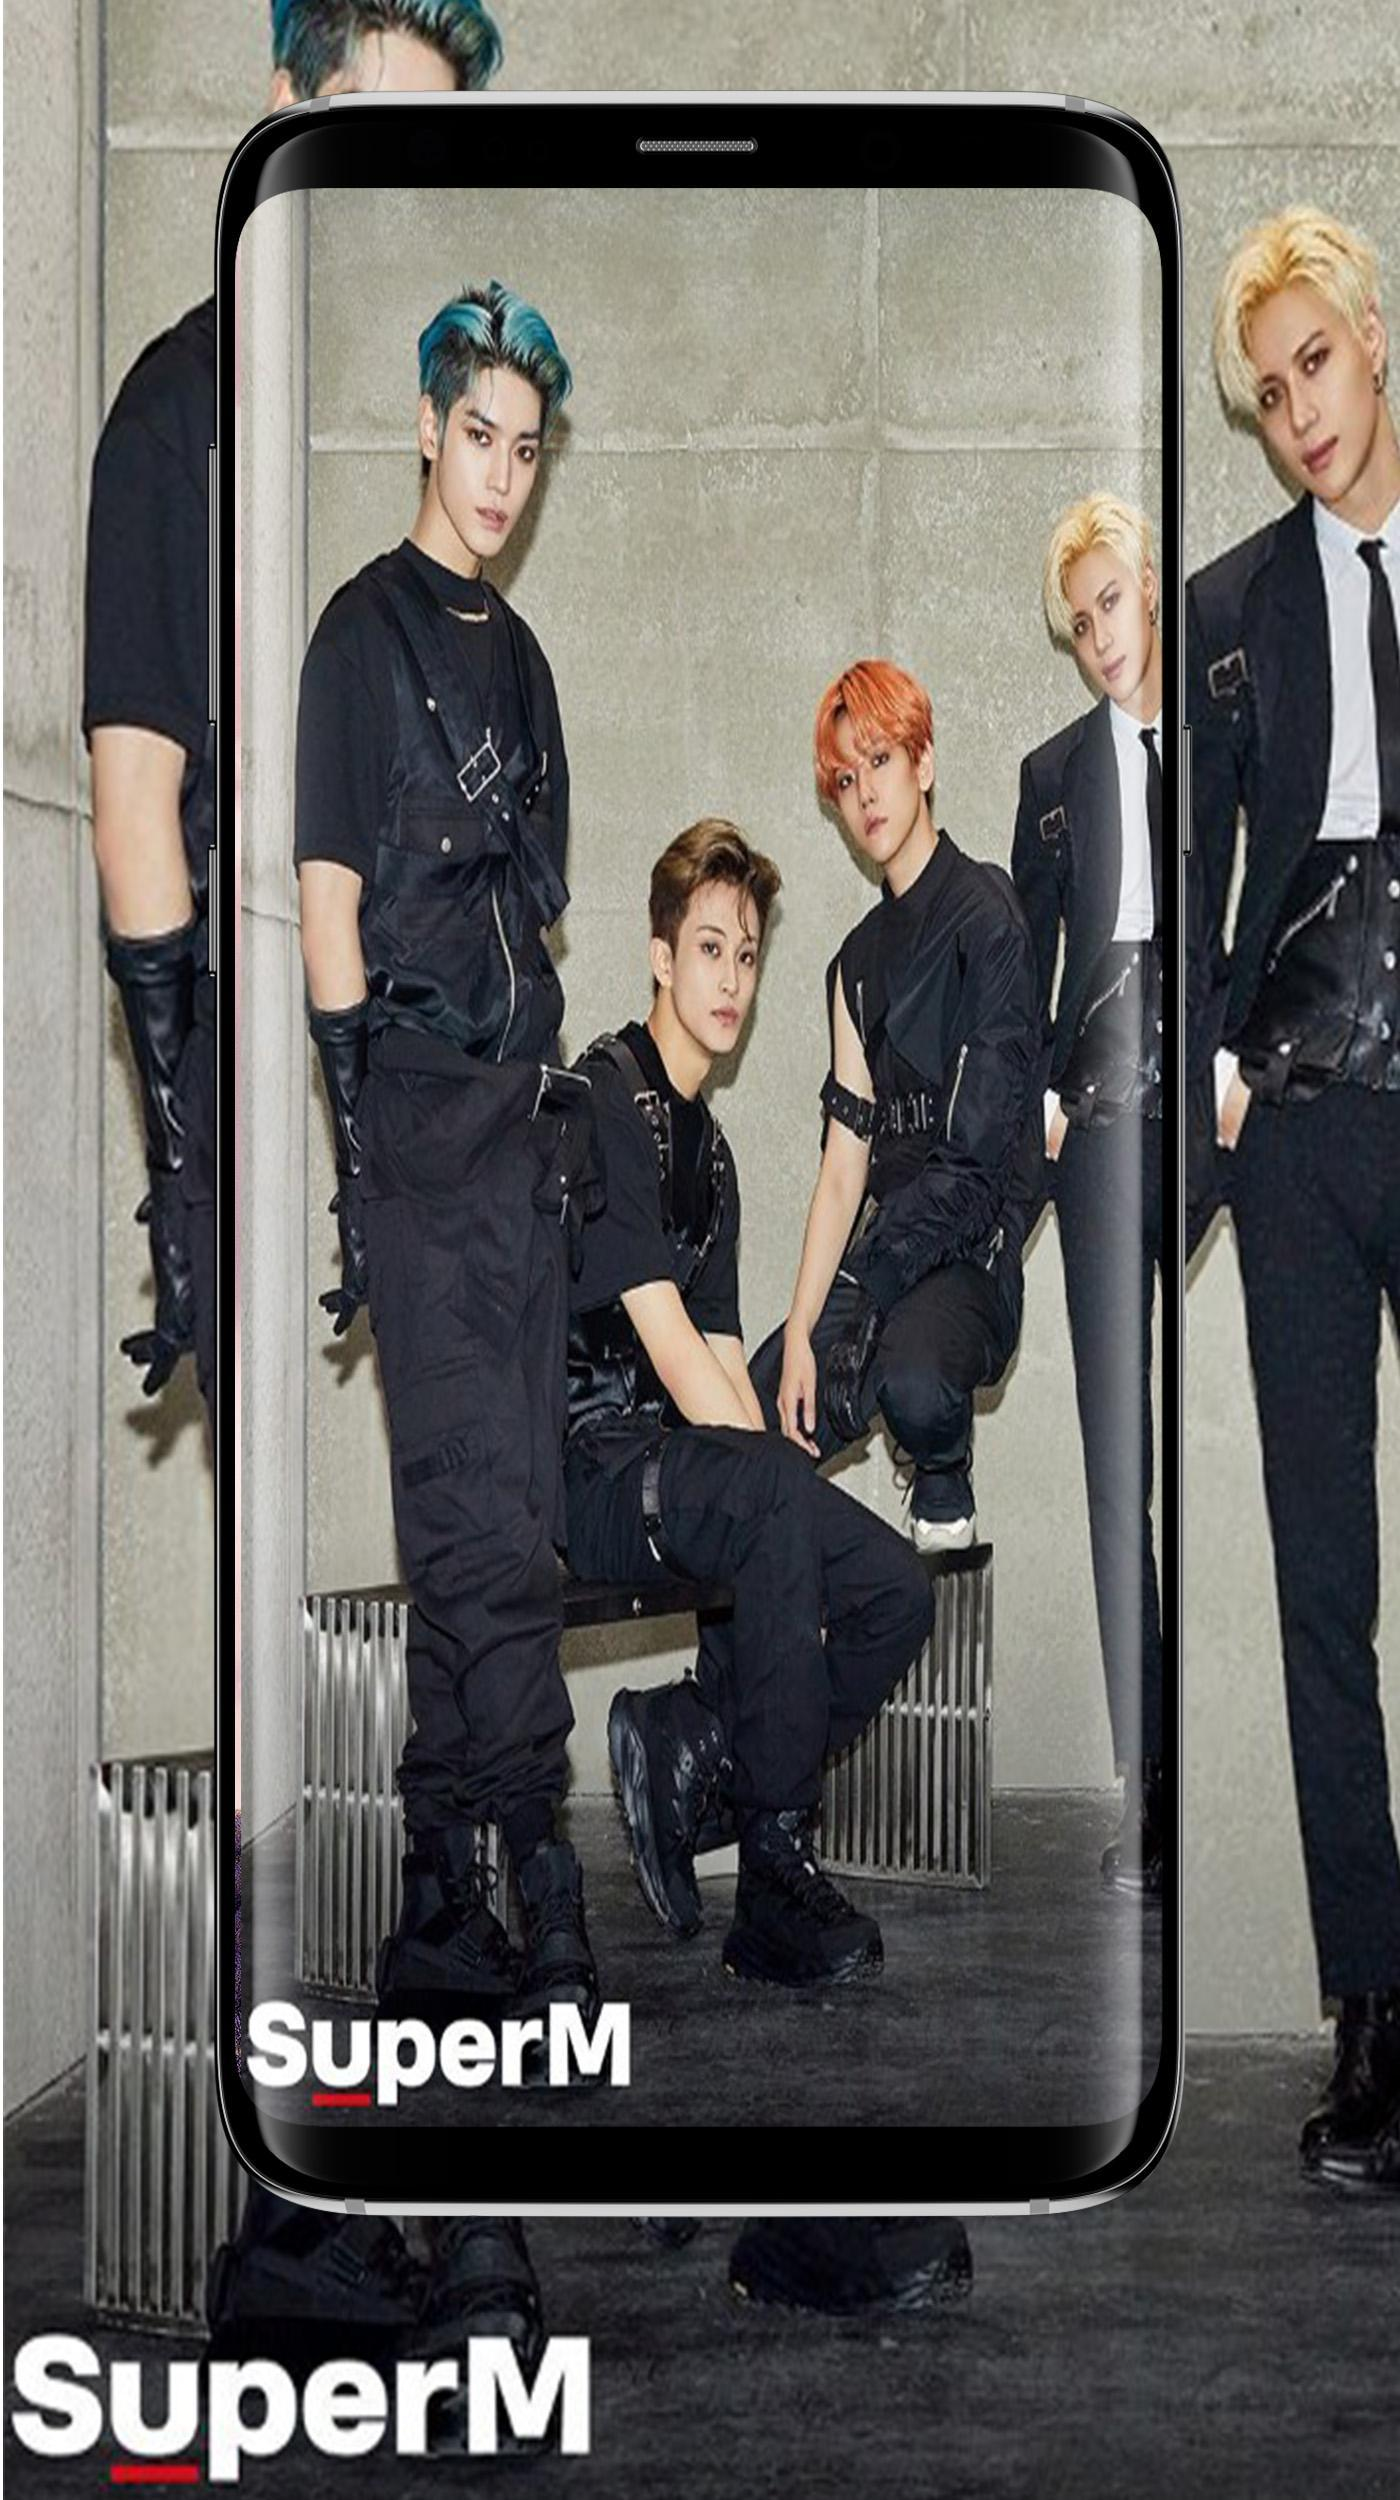 Kpop Superm Wallpaper For Android Apk Download